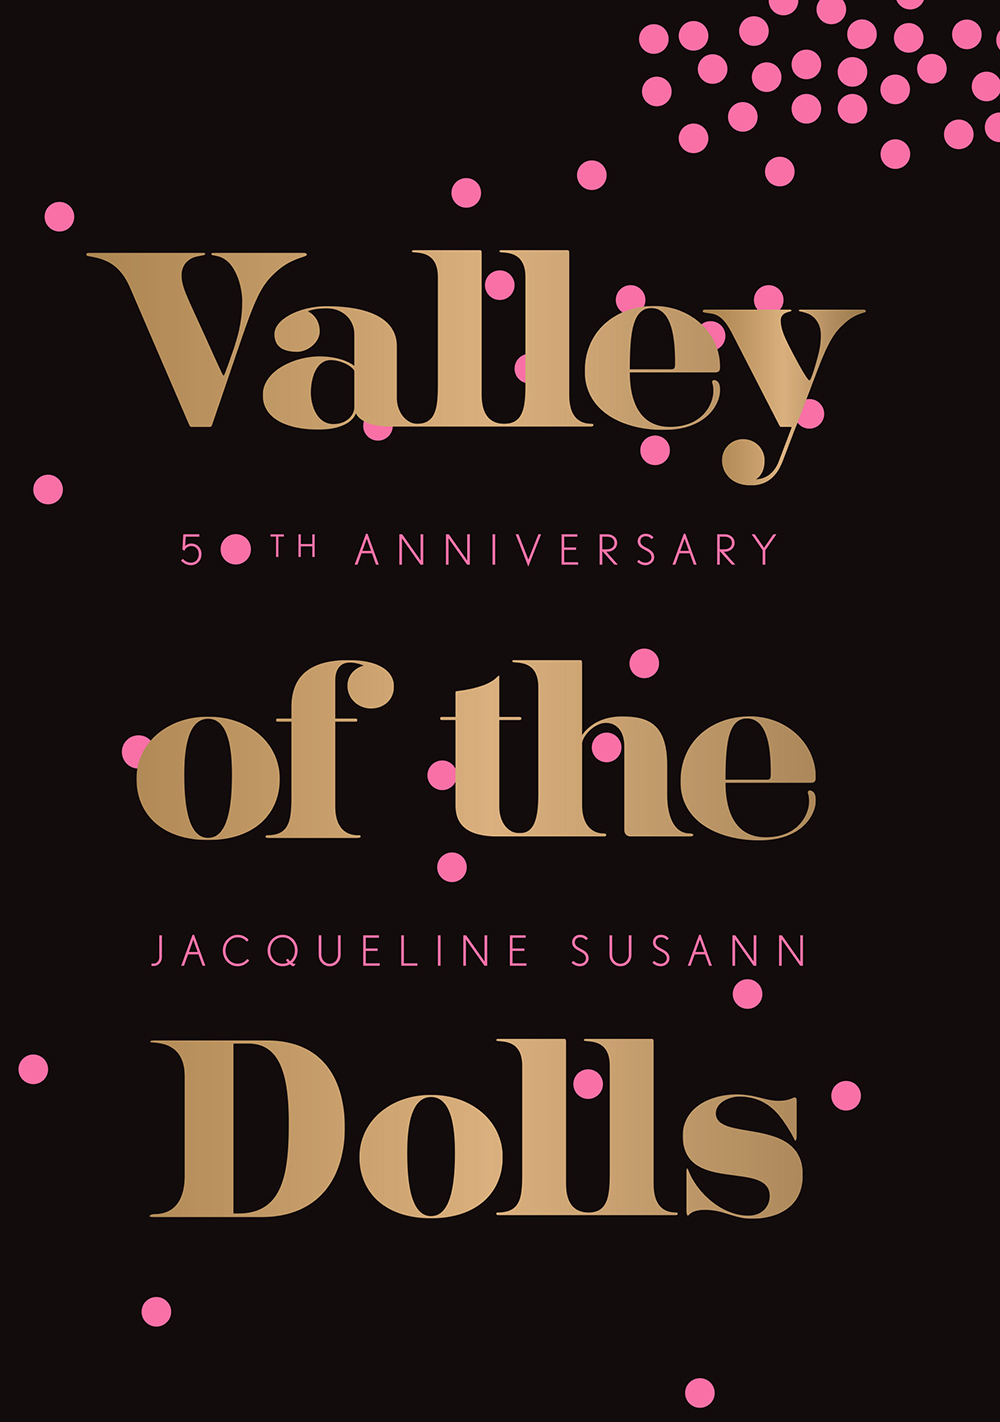 Valley of the Dolls - Embed 1